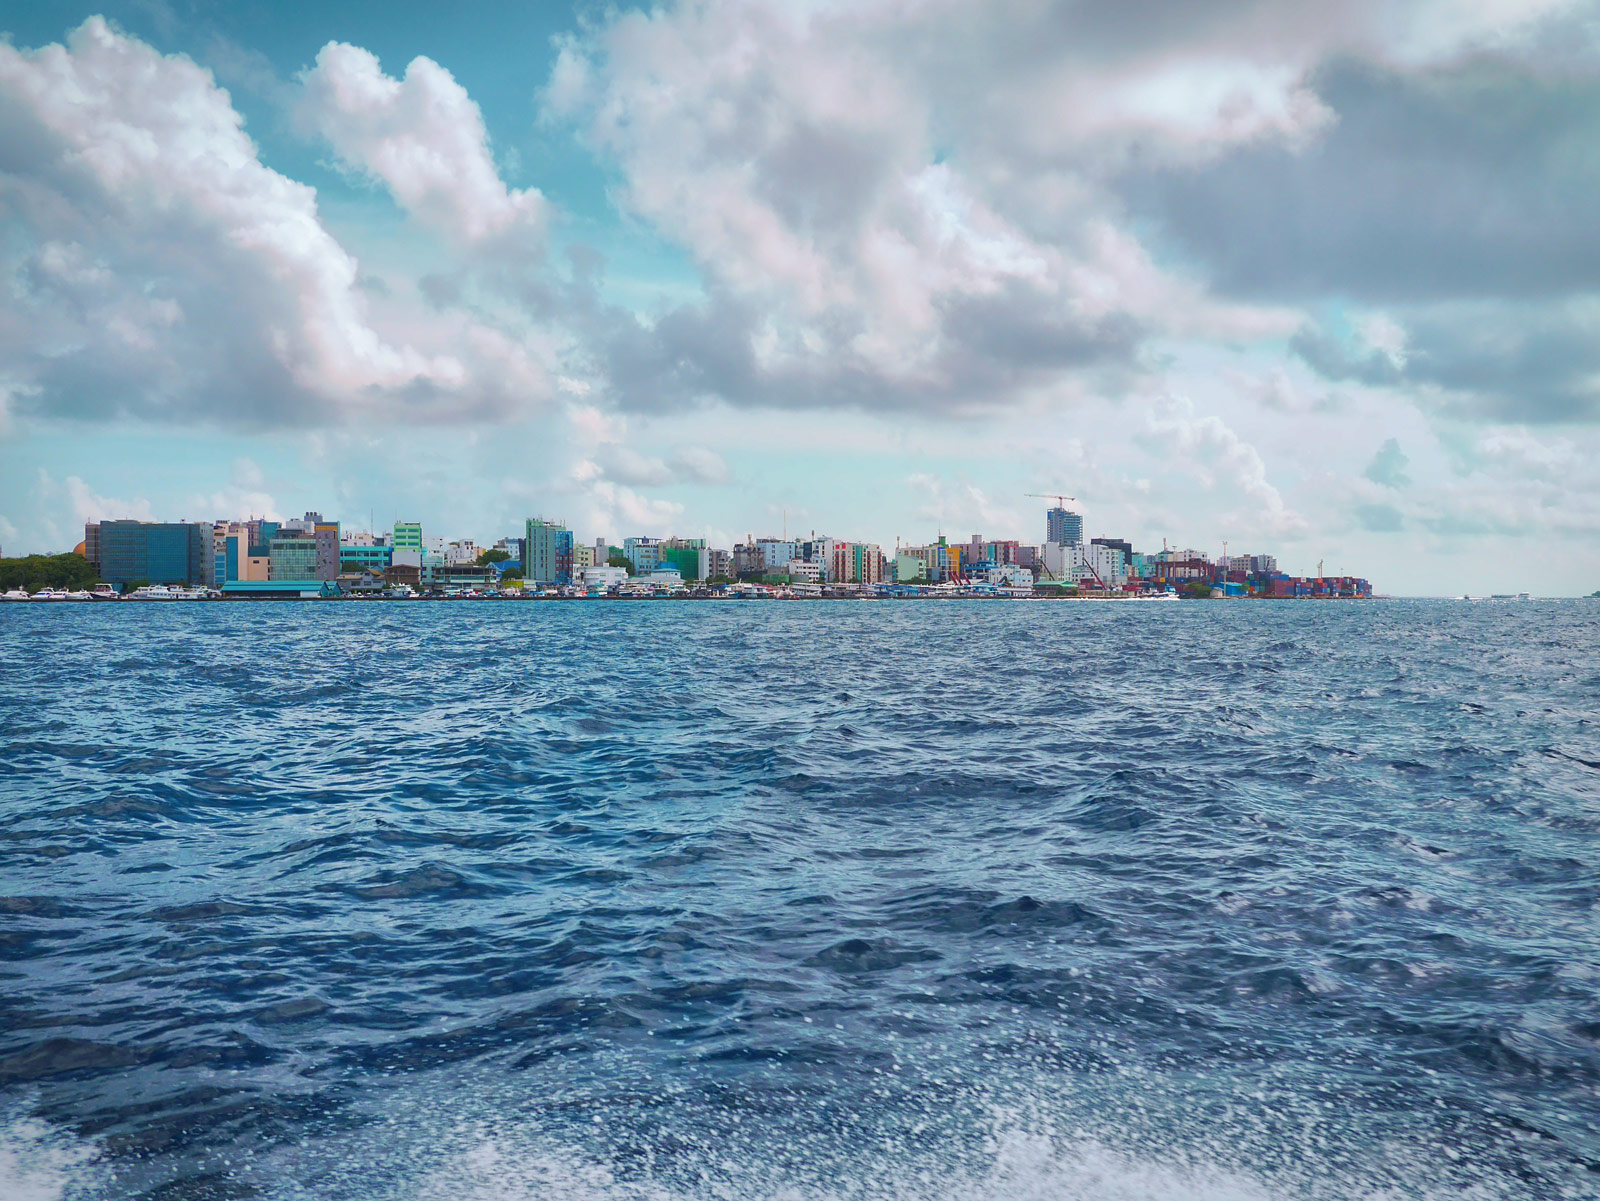 Bored of the Resort? Take a Speedboat to Malé - The Maldives, The Maldives